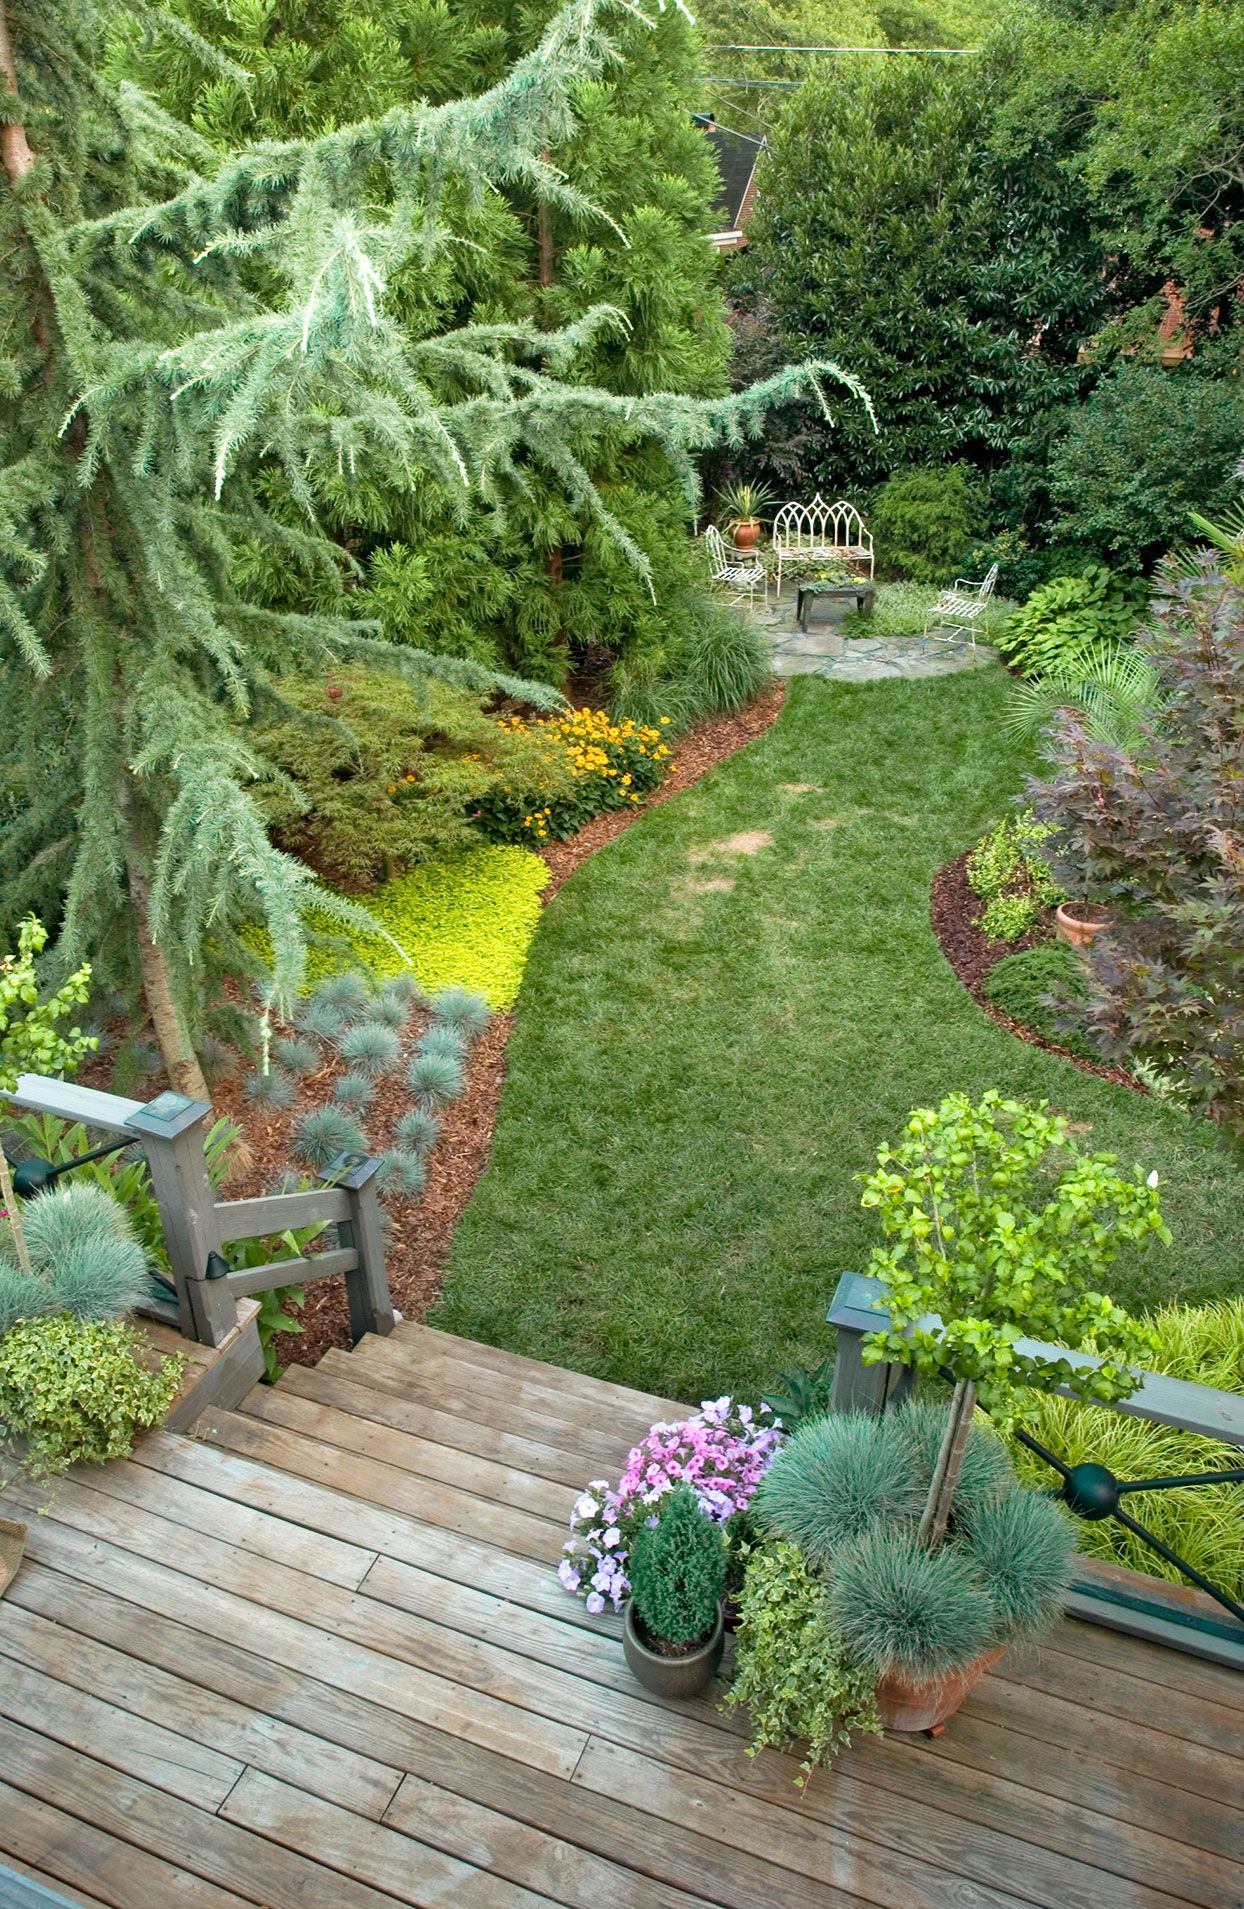 14 Landscaping Ideas For Giving Your Yard A Makeover Small